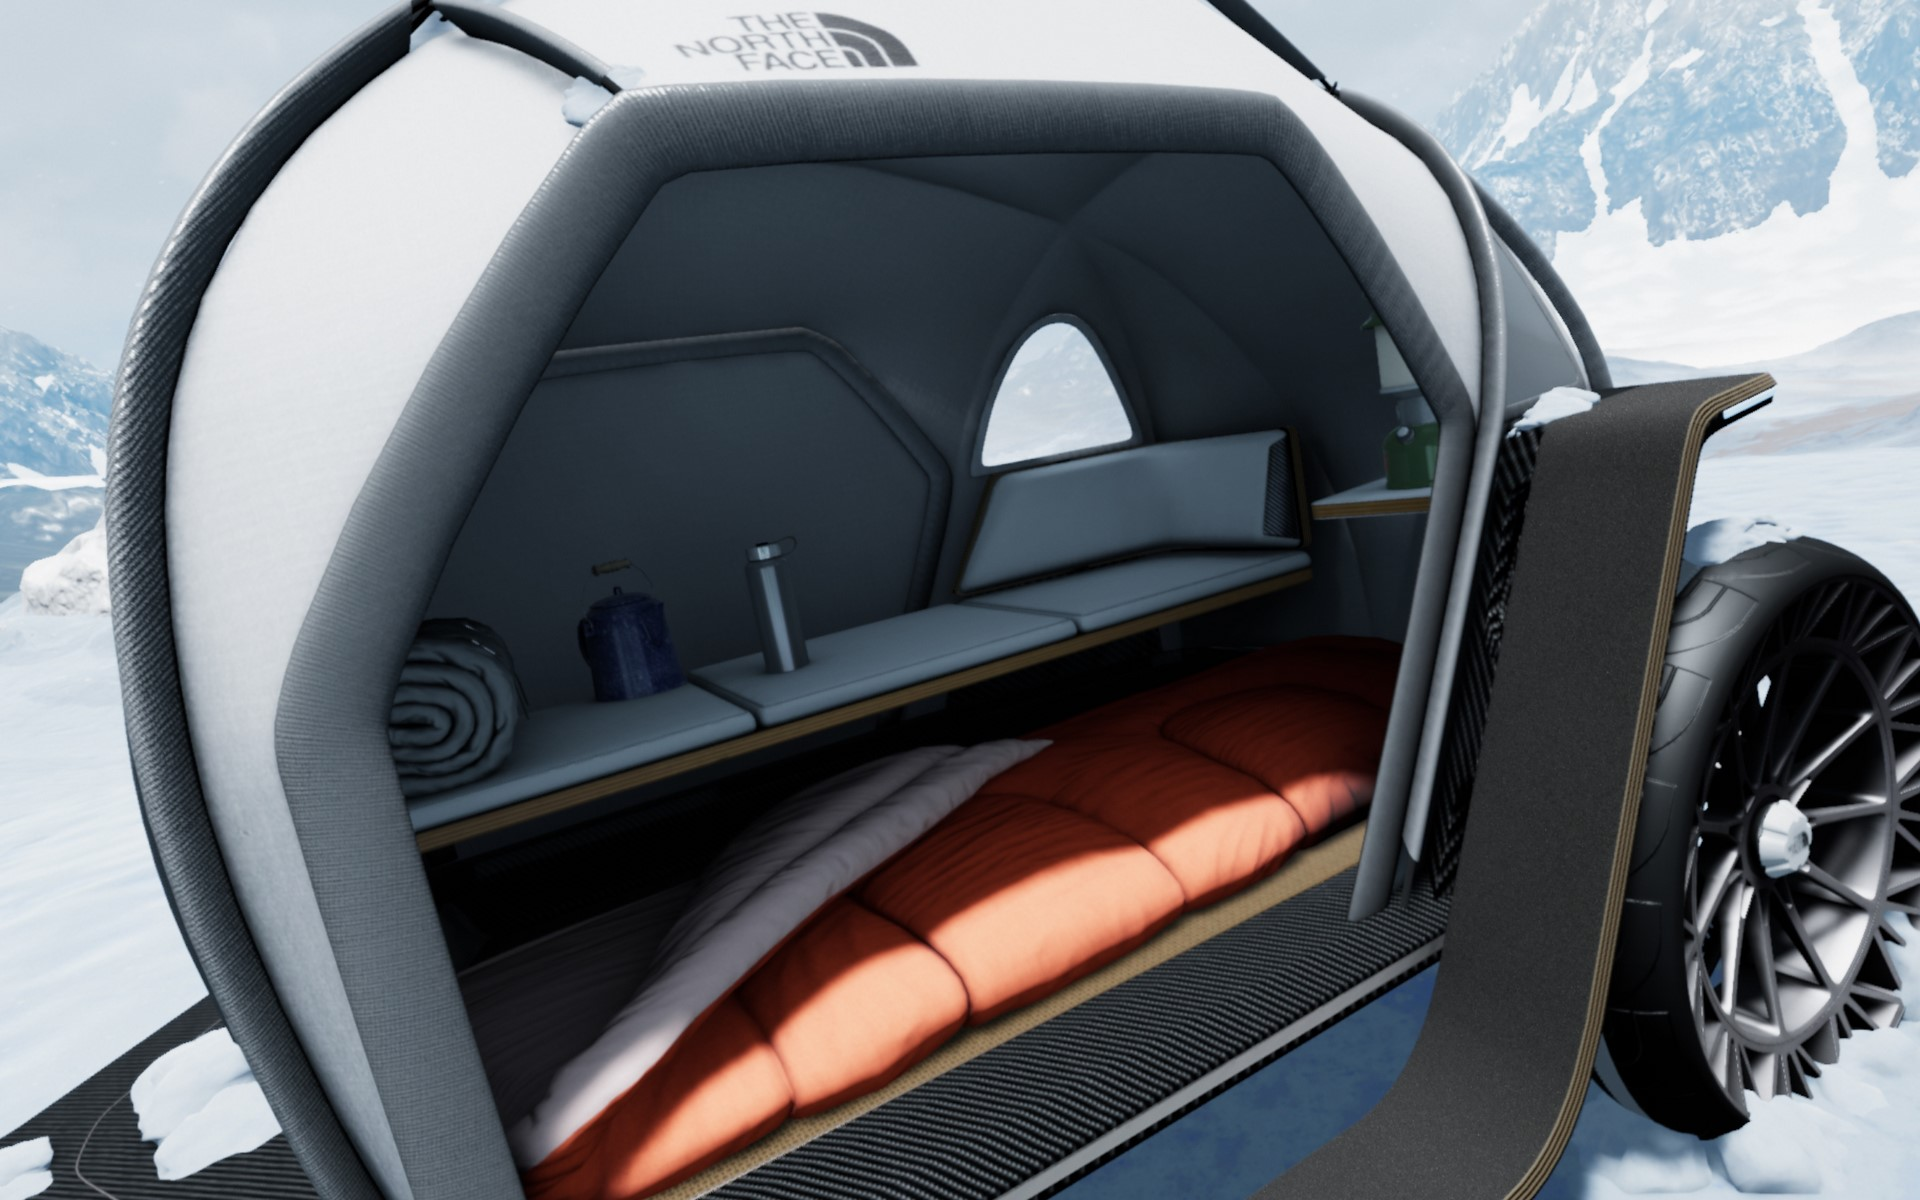 BMW North Face Camper Concept (4)